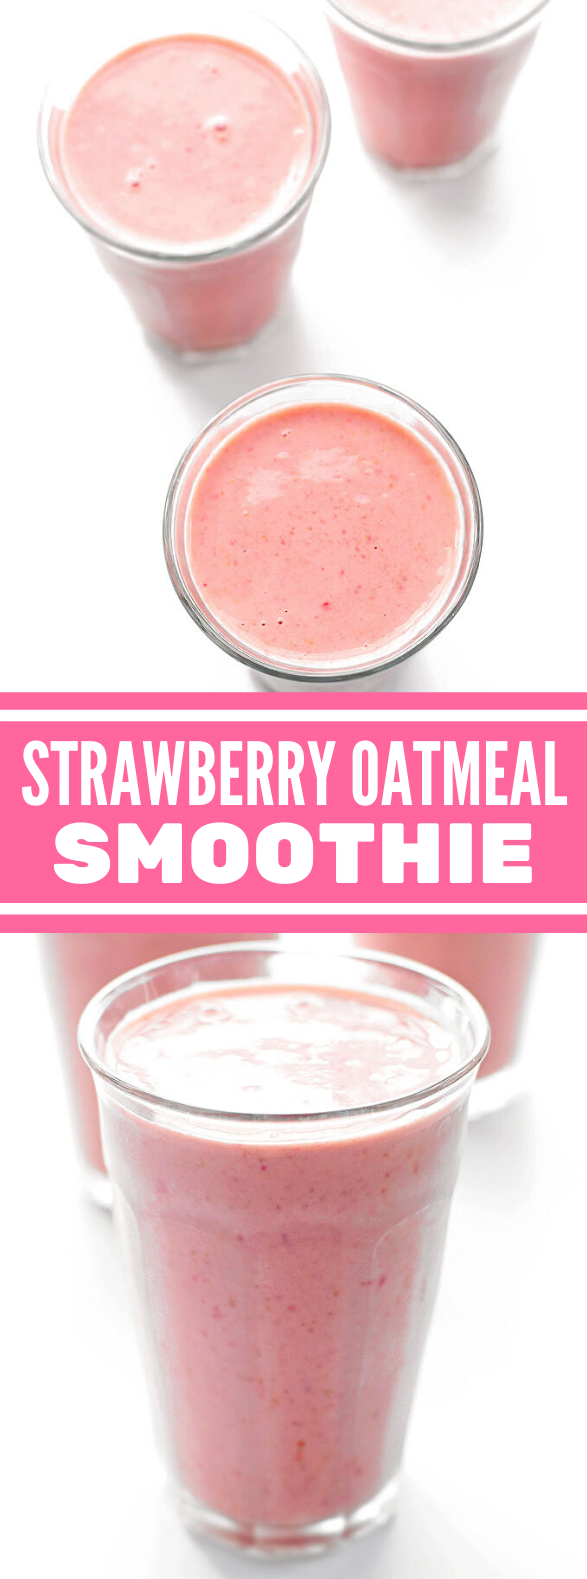 STRAWBERRY OATMEAL SMOOTHIE RECIPE #drinks #healthy